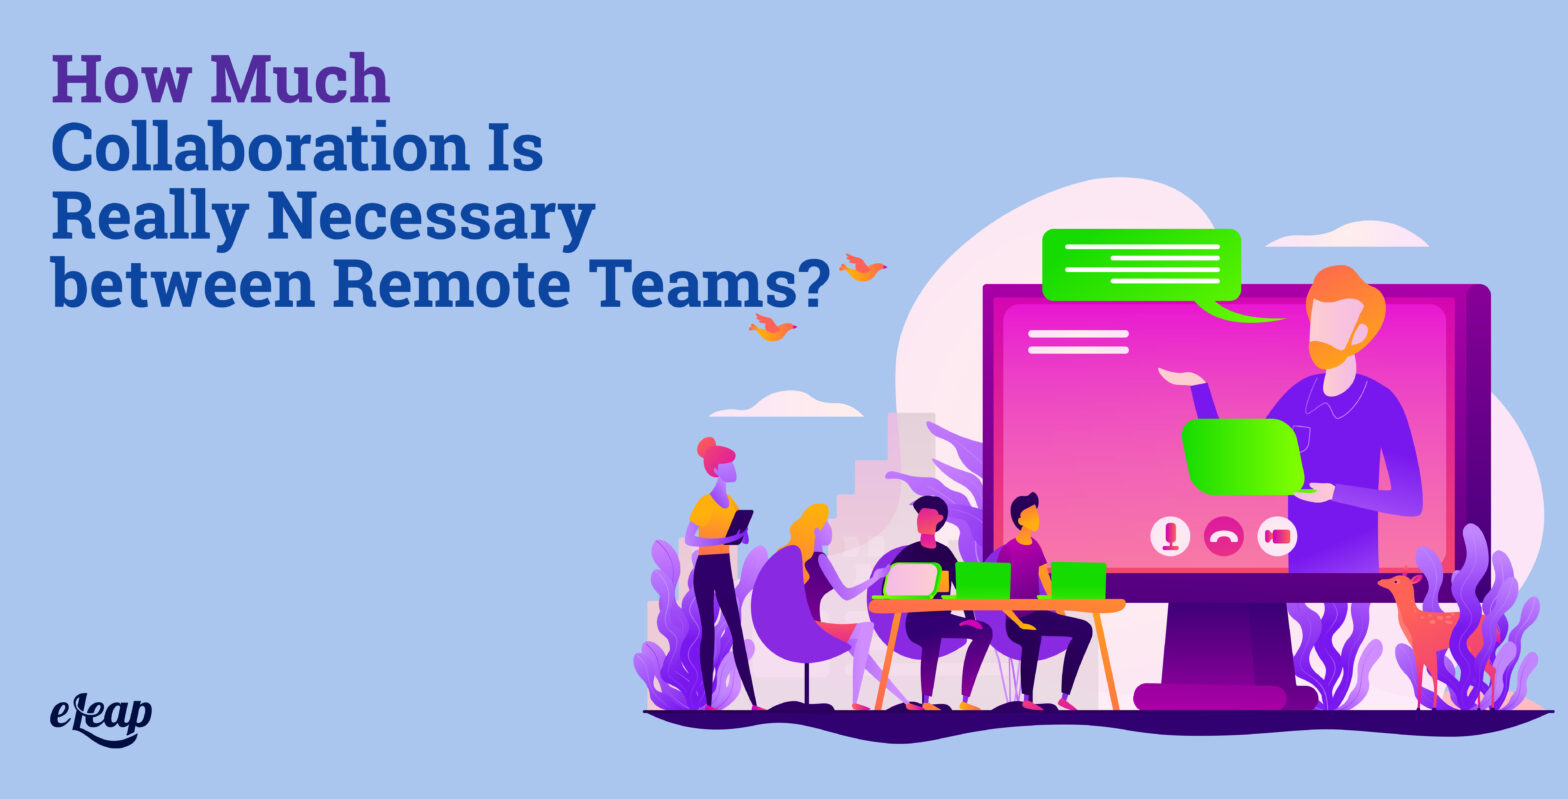 How Much Collaboration Is Really Necessary between Remote Teams?